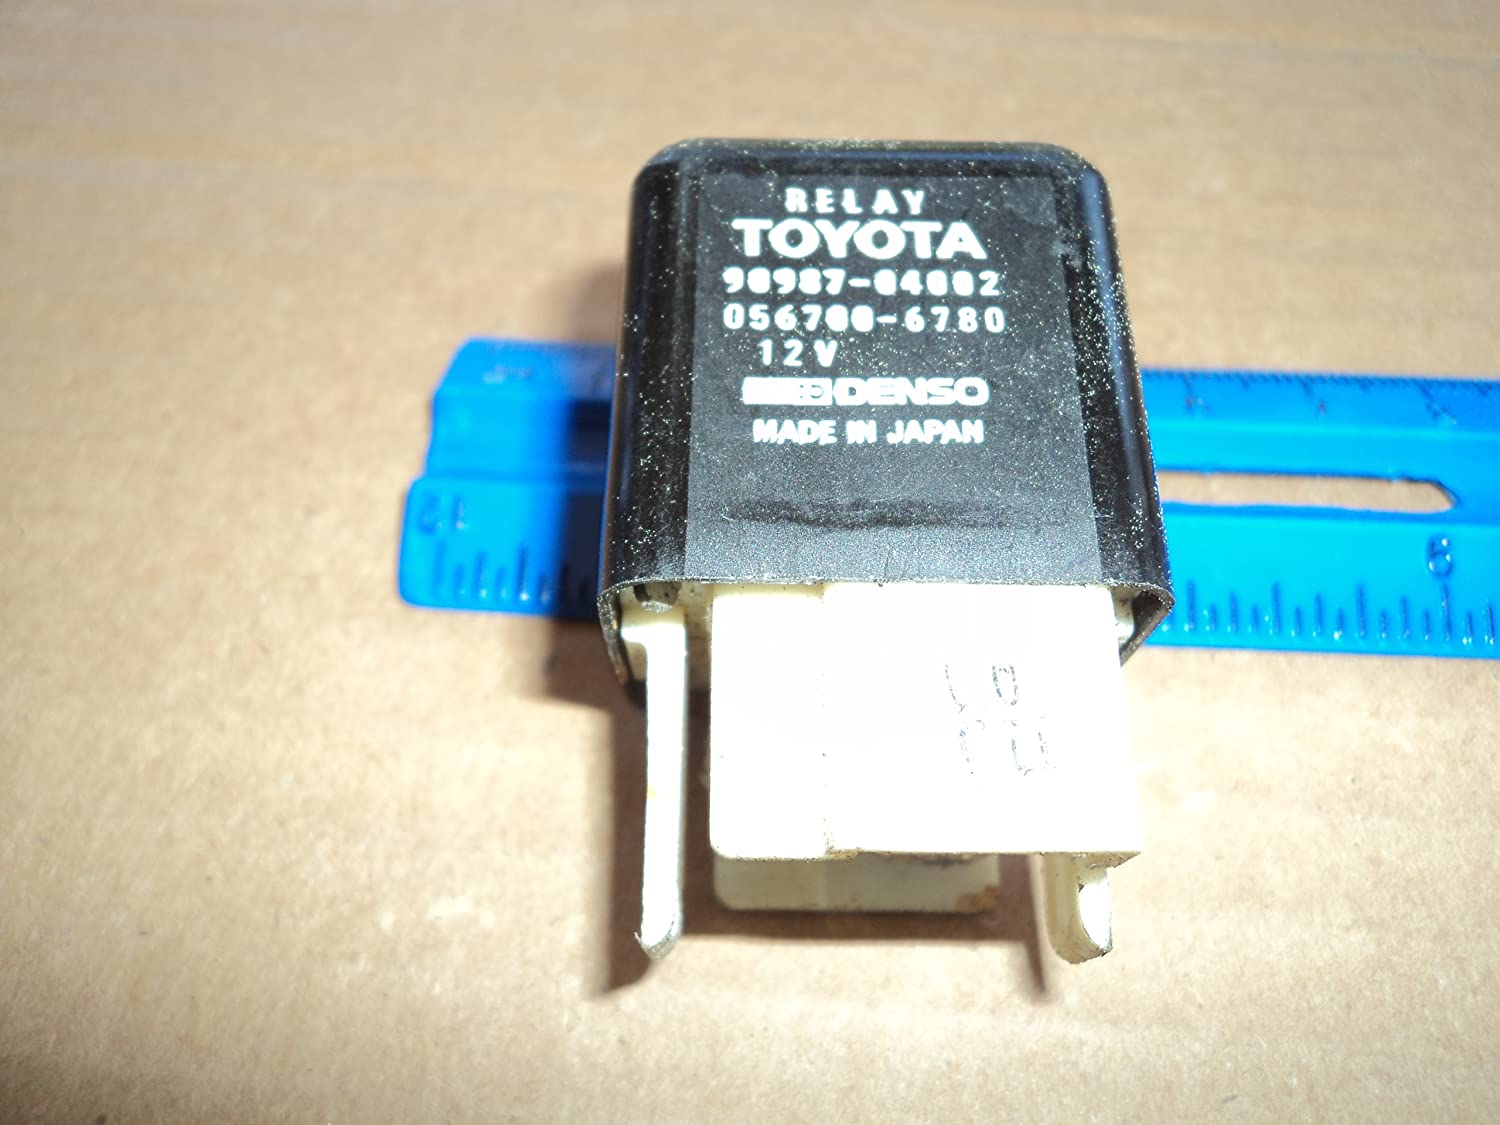 Toyota Denso Relay 90987-04002 DRL Ignition Radiator Cooling Fan Window Blower